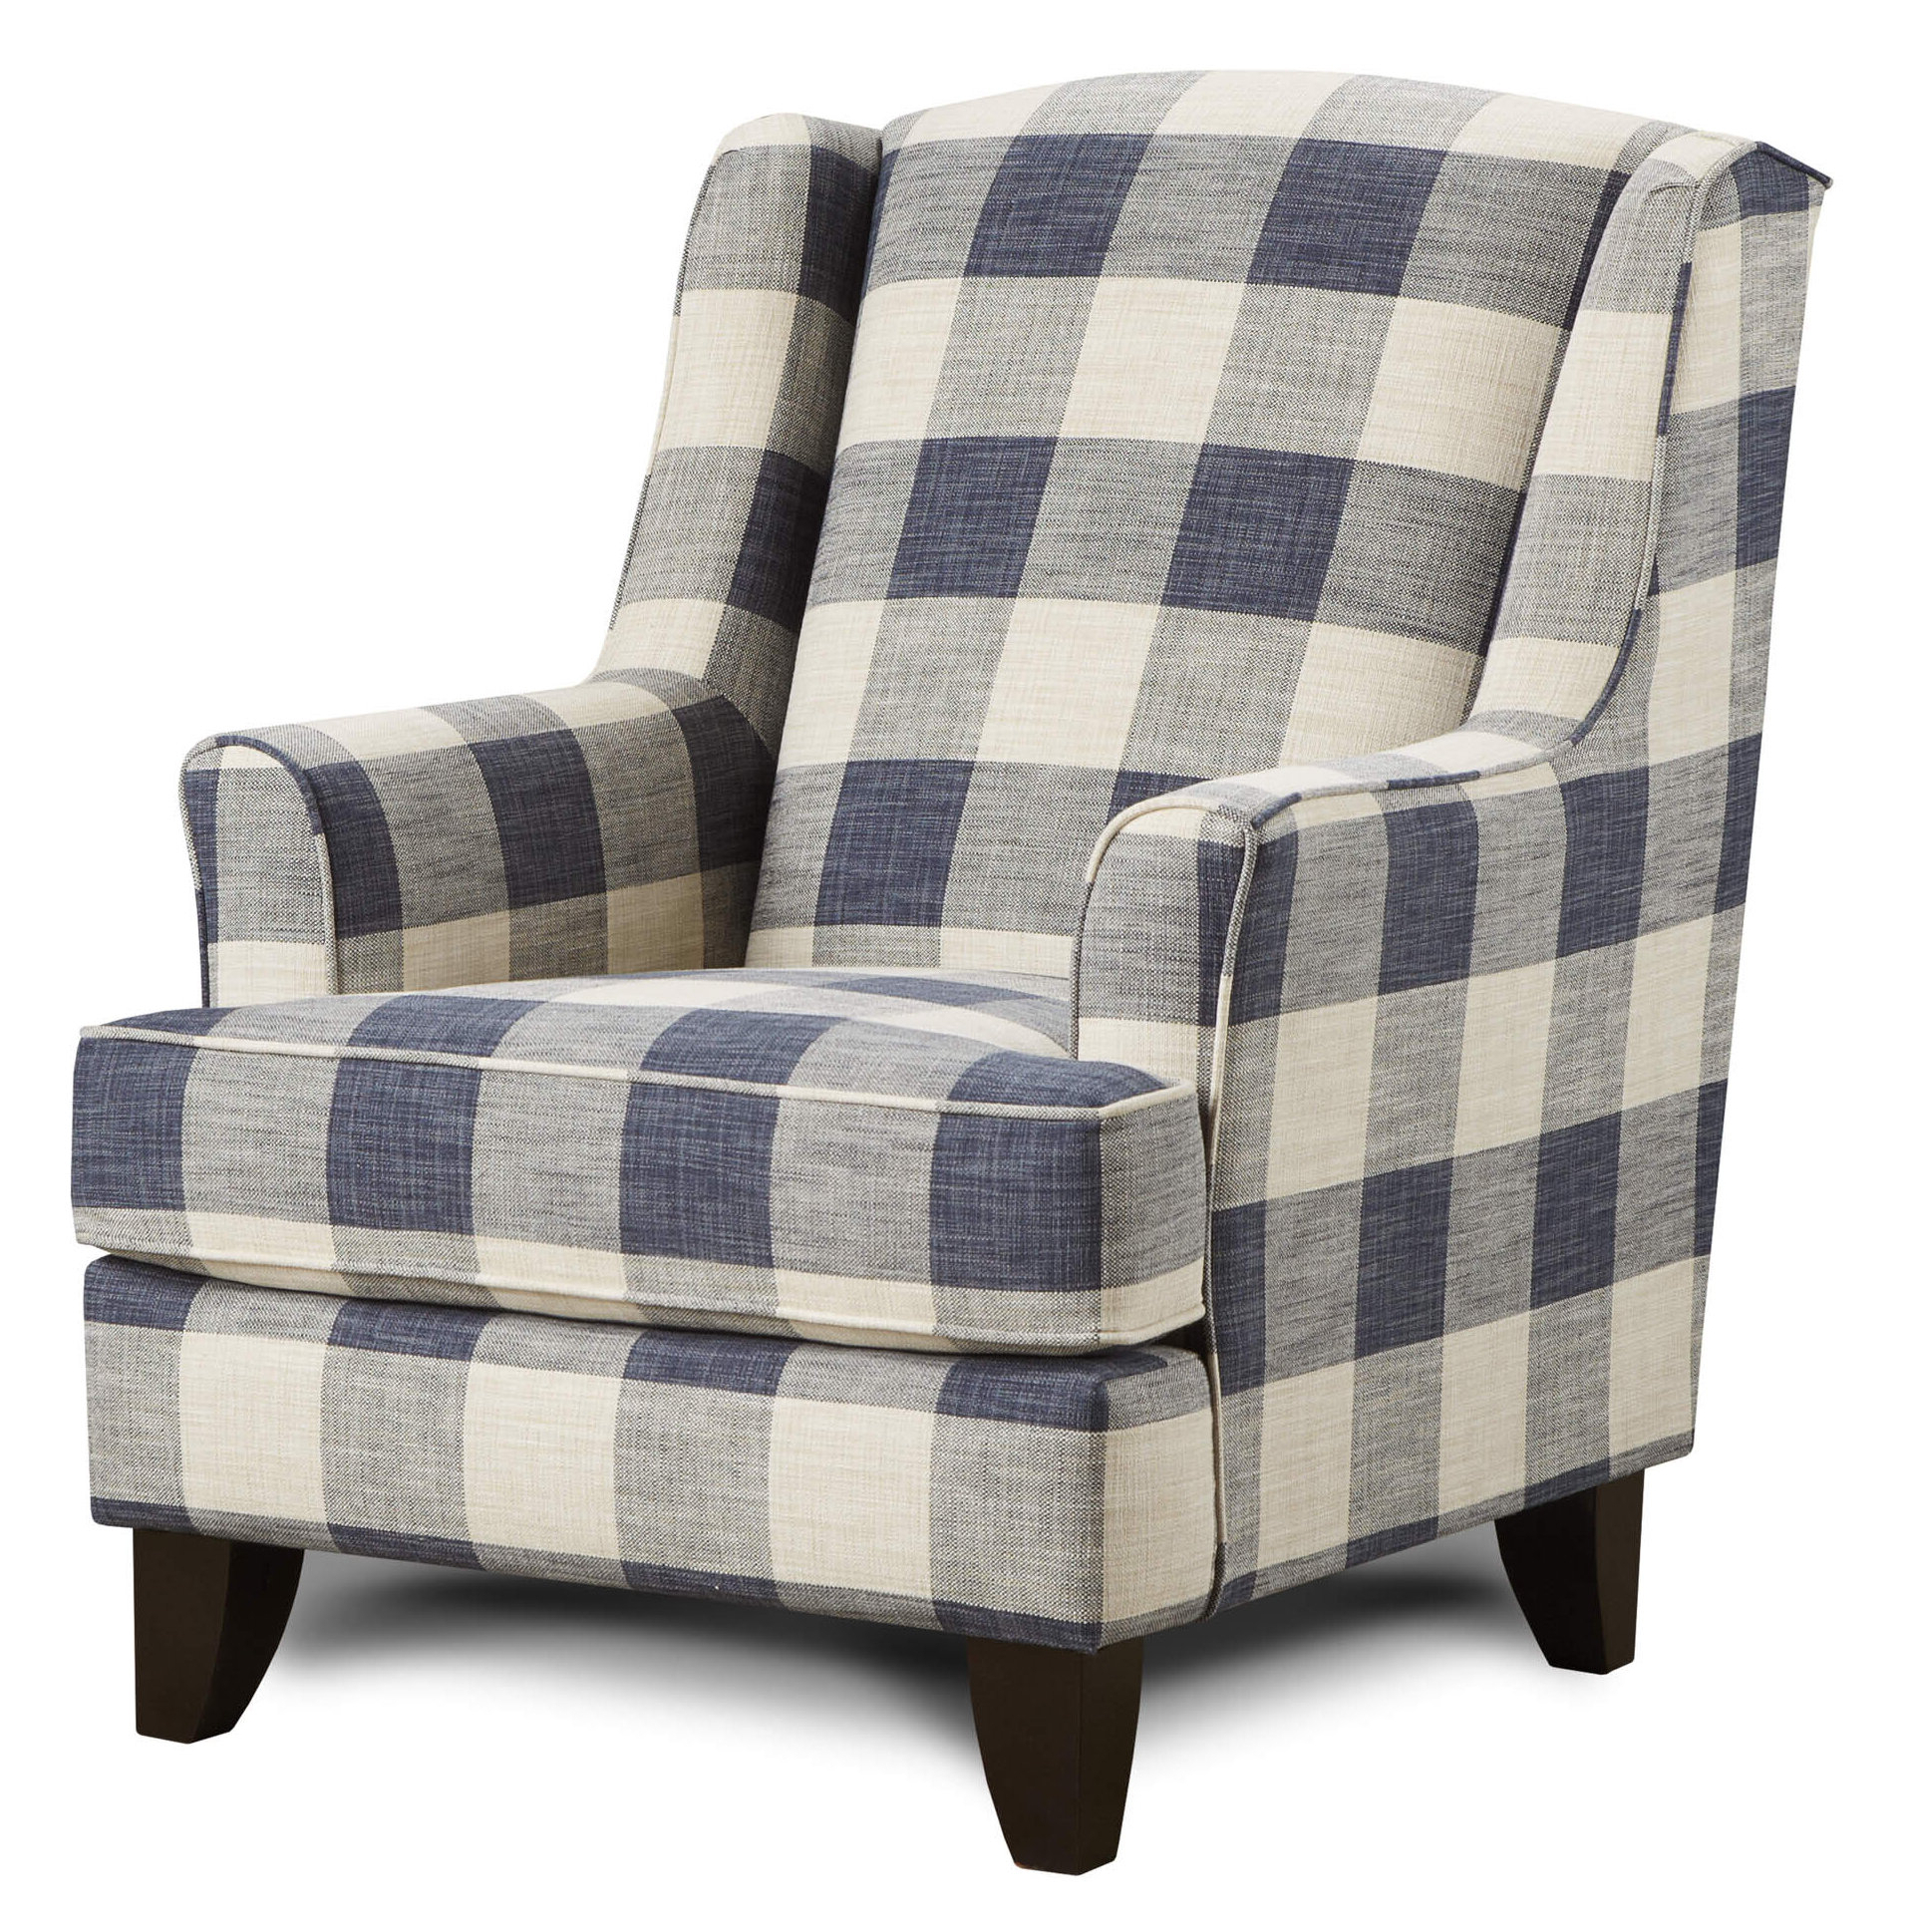 Espresso Wood Wingback Accent Chairs You'll Love In 2021 Pertaining To Most Recently Released Waterton Wingback Chairs (View 13 of 20)